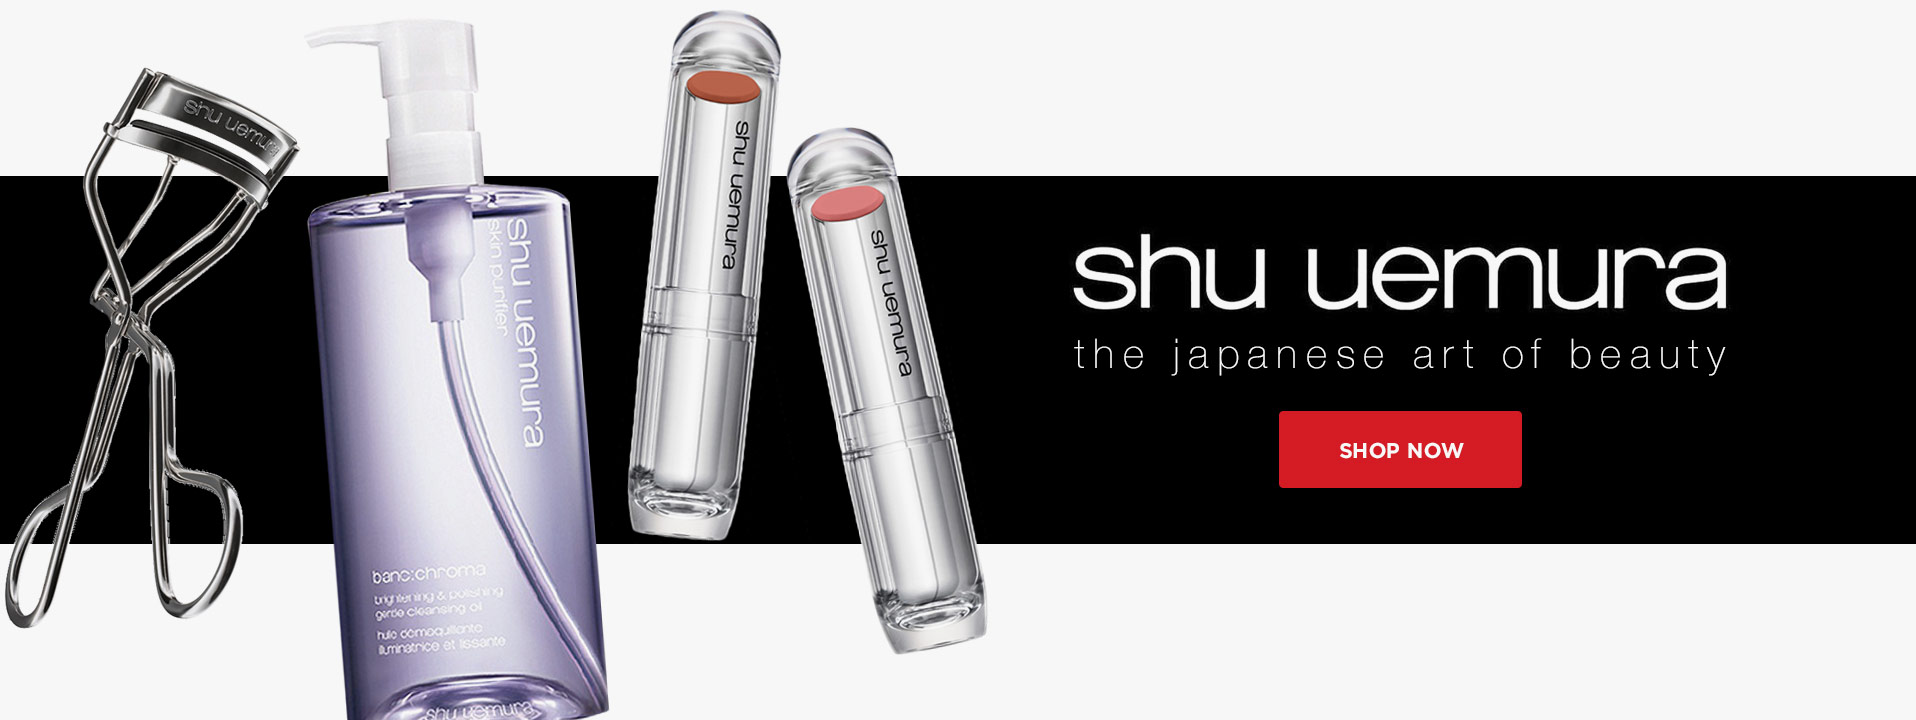 Don't Miss Out!: Shu Uemura